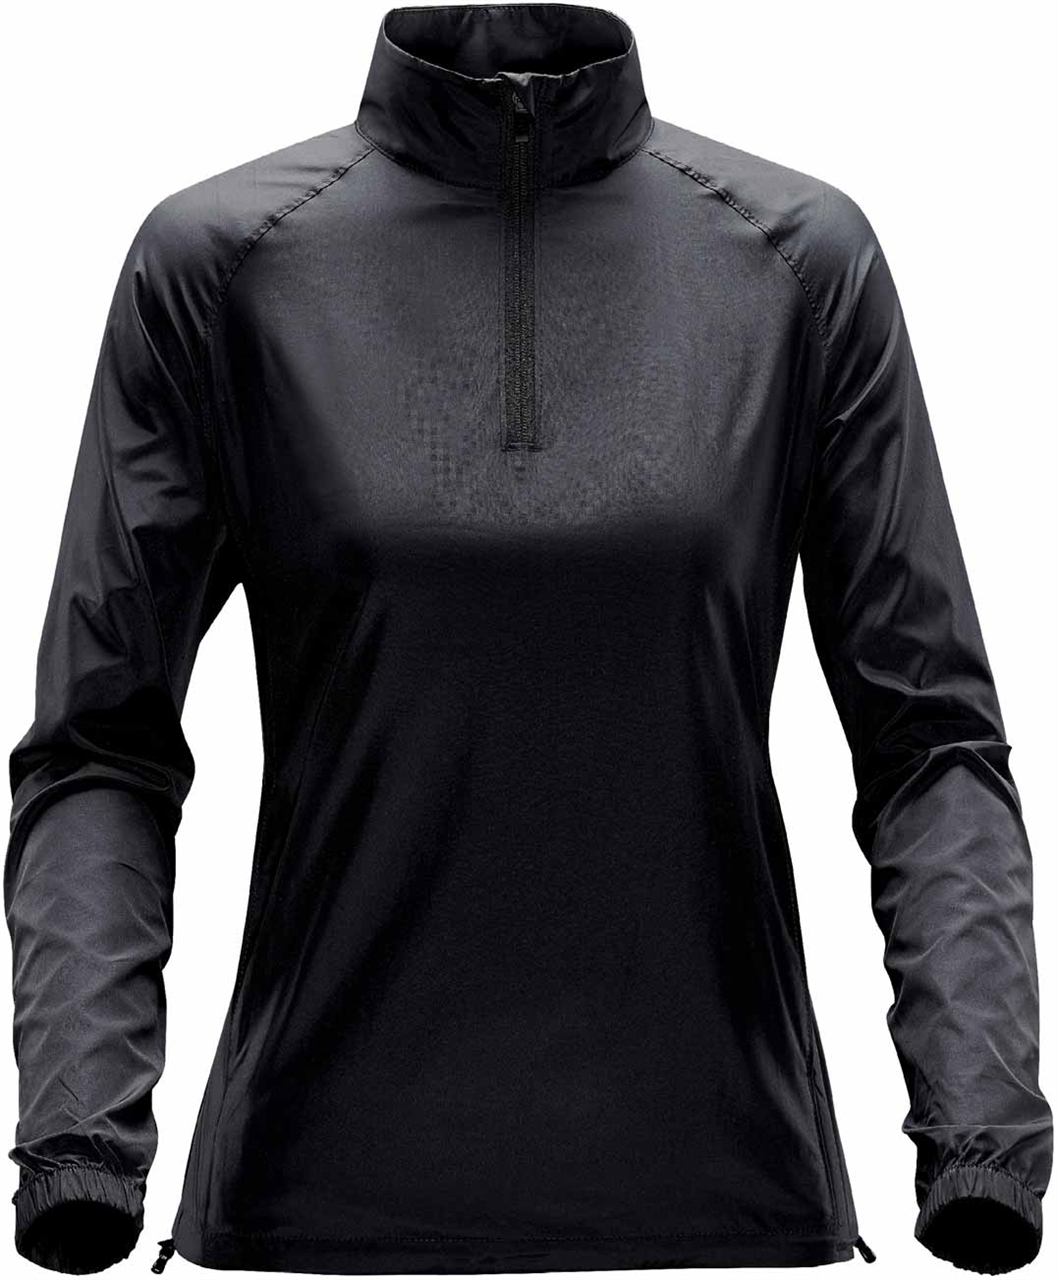 Picture of Stormtech Women's Micro Light II Windshirt